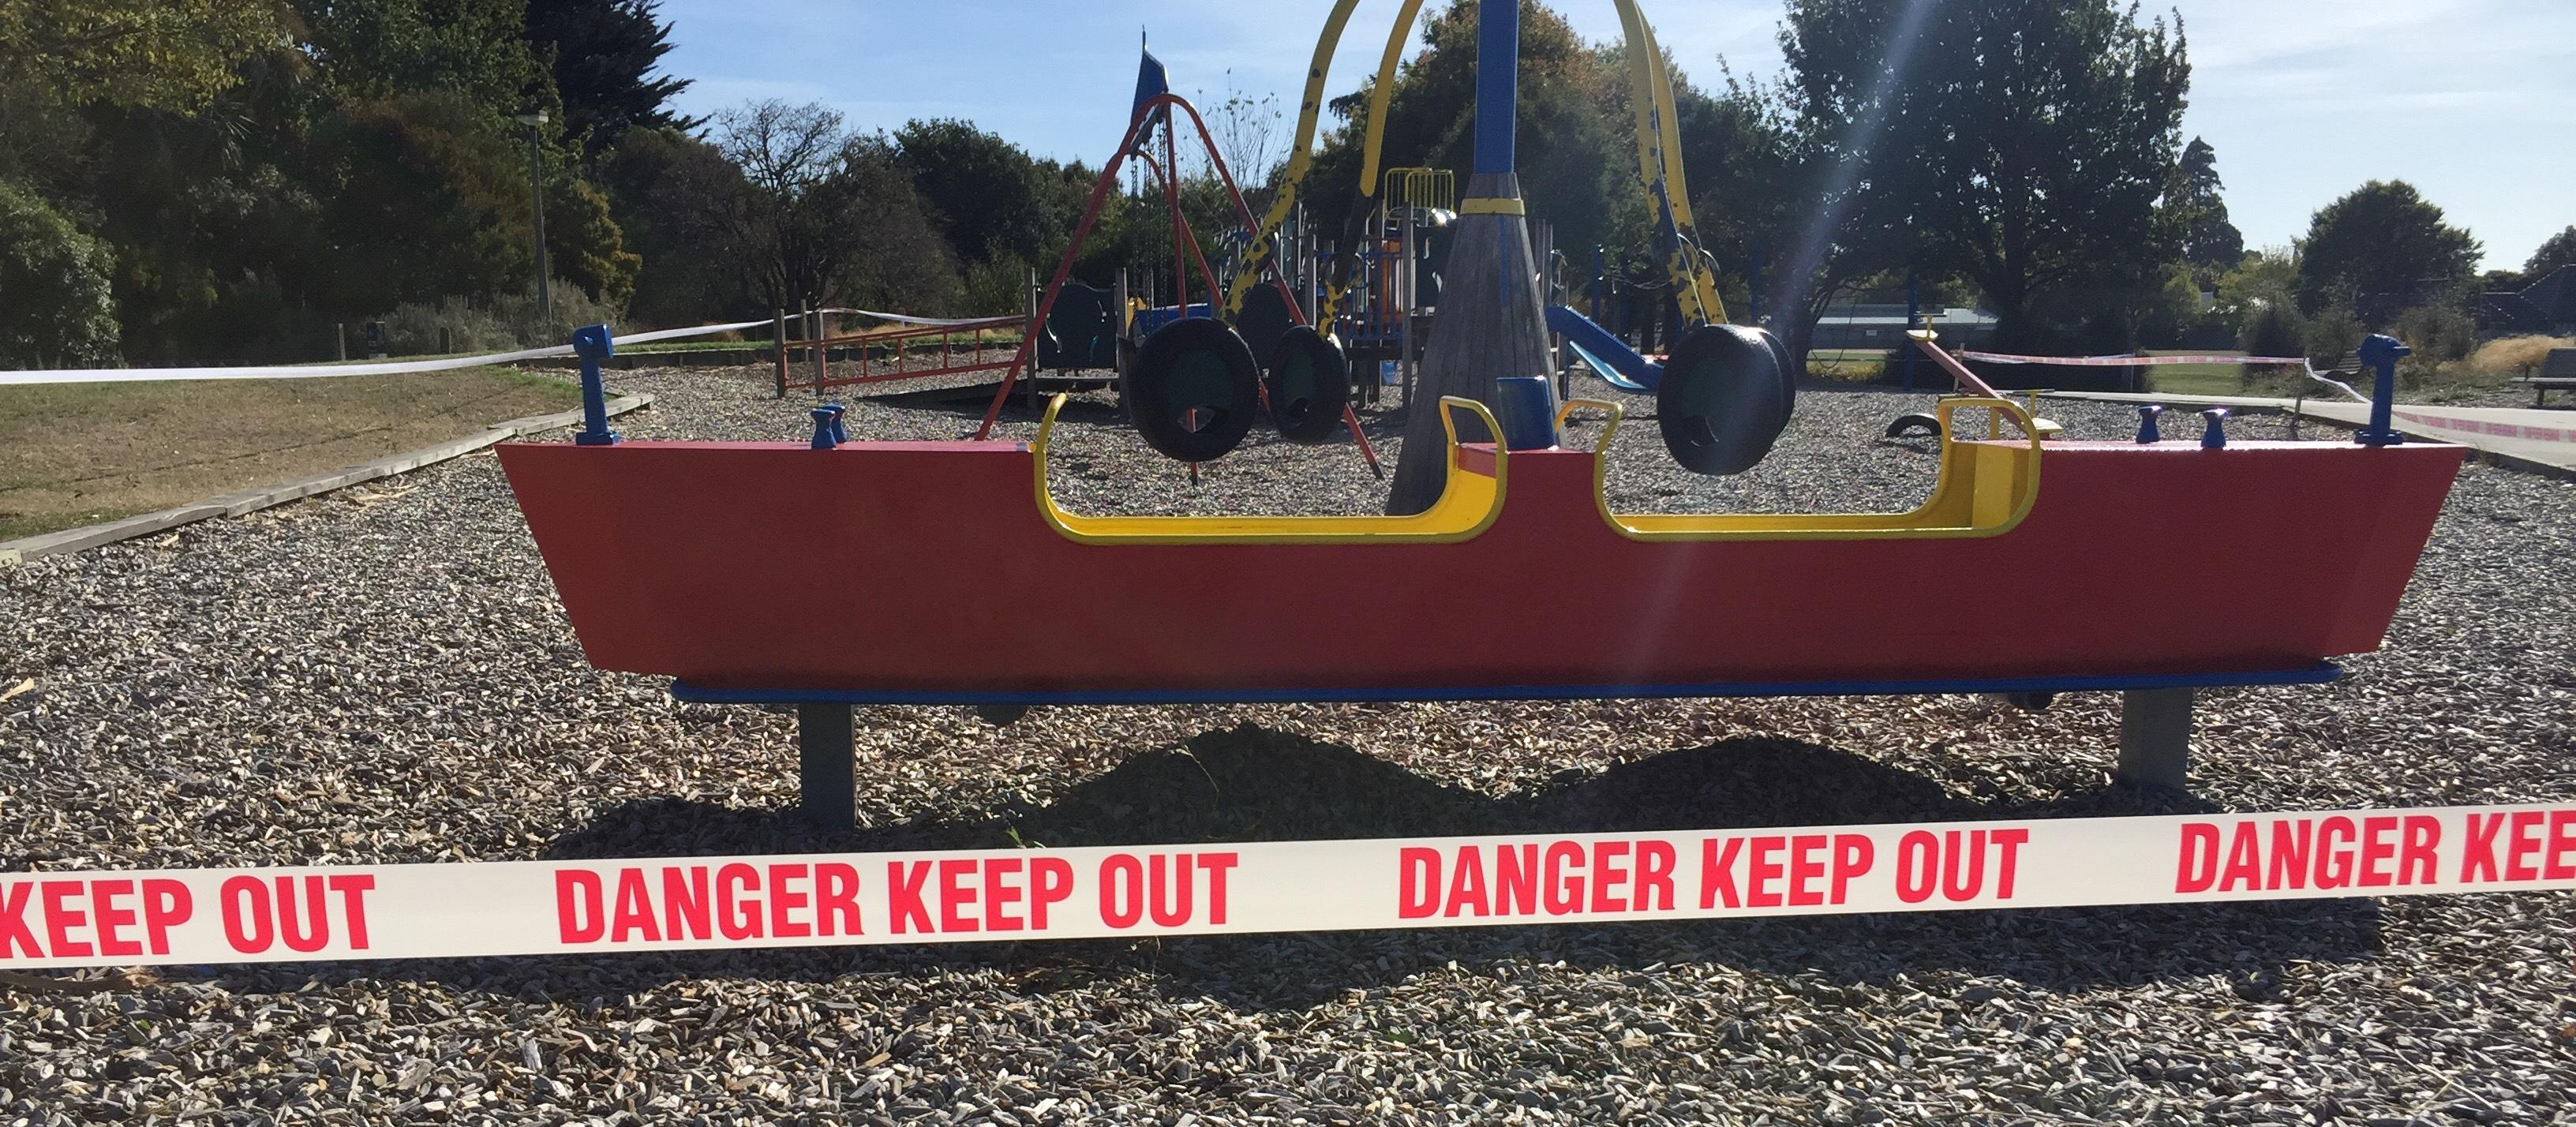 Playground shut as NZ moves to  COVID-19 Lockdown